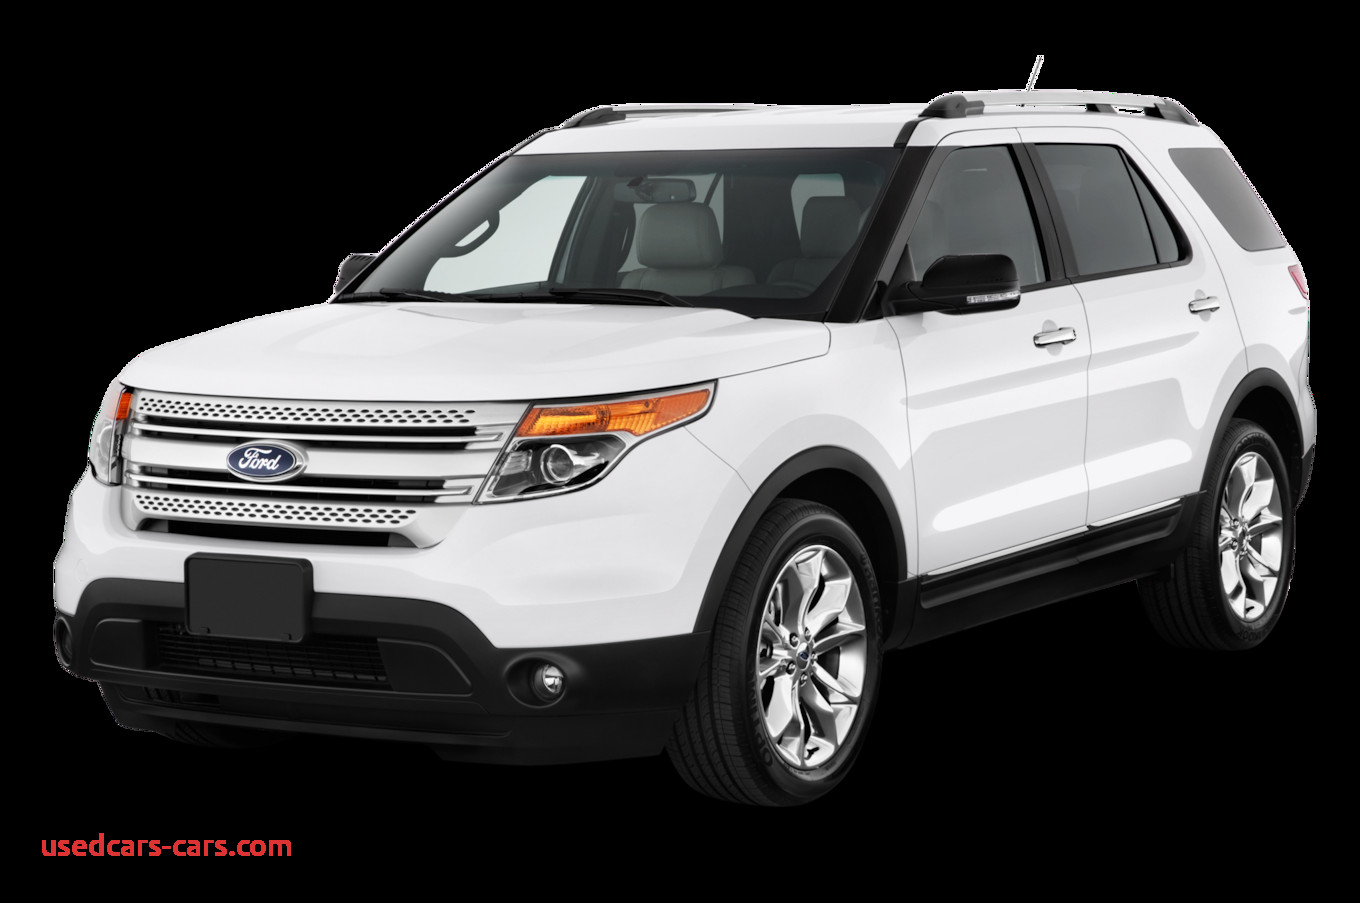 Ford Explorer 2015 Spec Best Of 2015 ford Explorer Reviews Research Explorer Prices